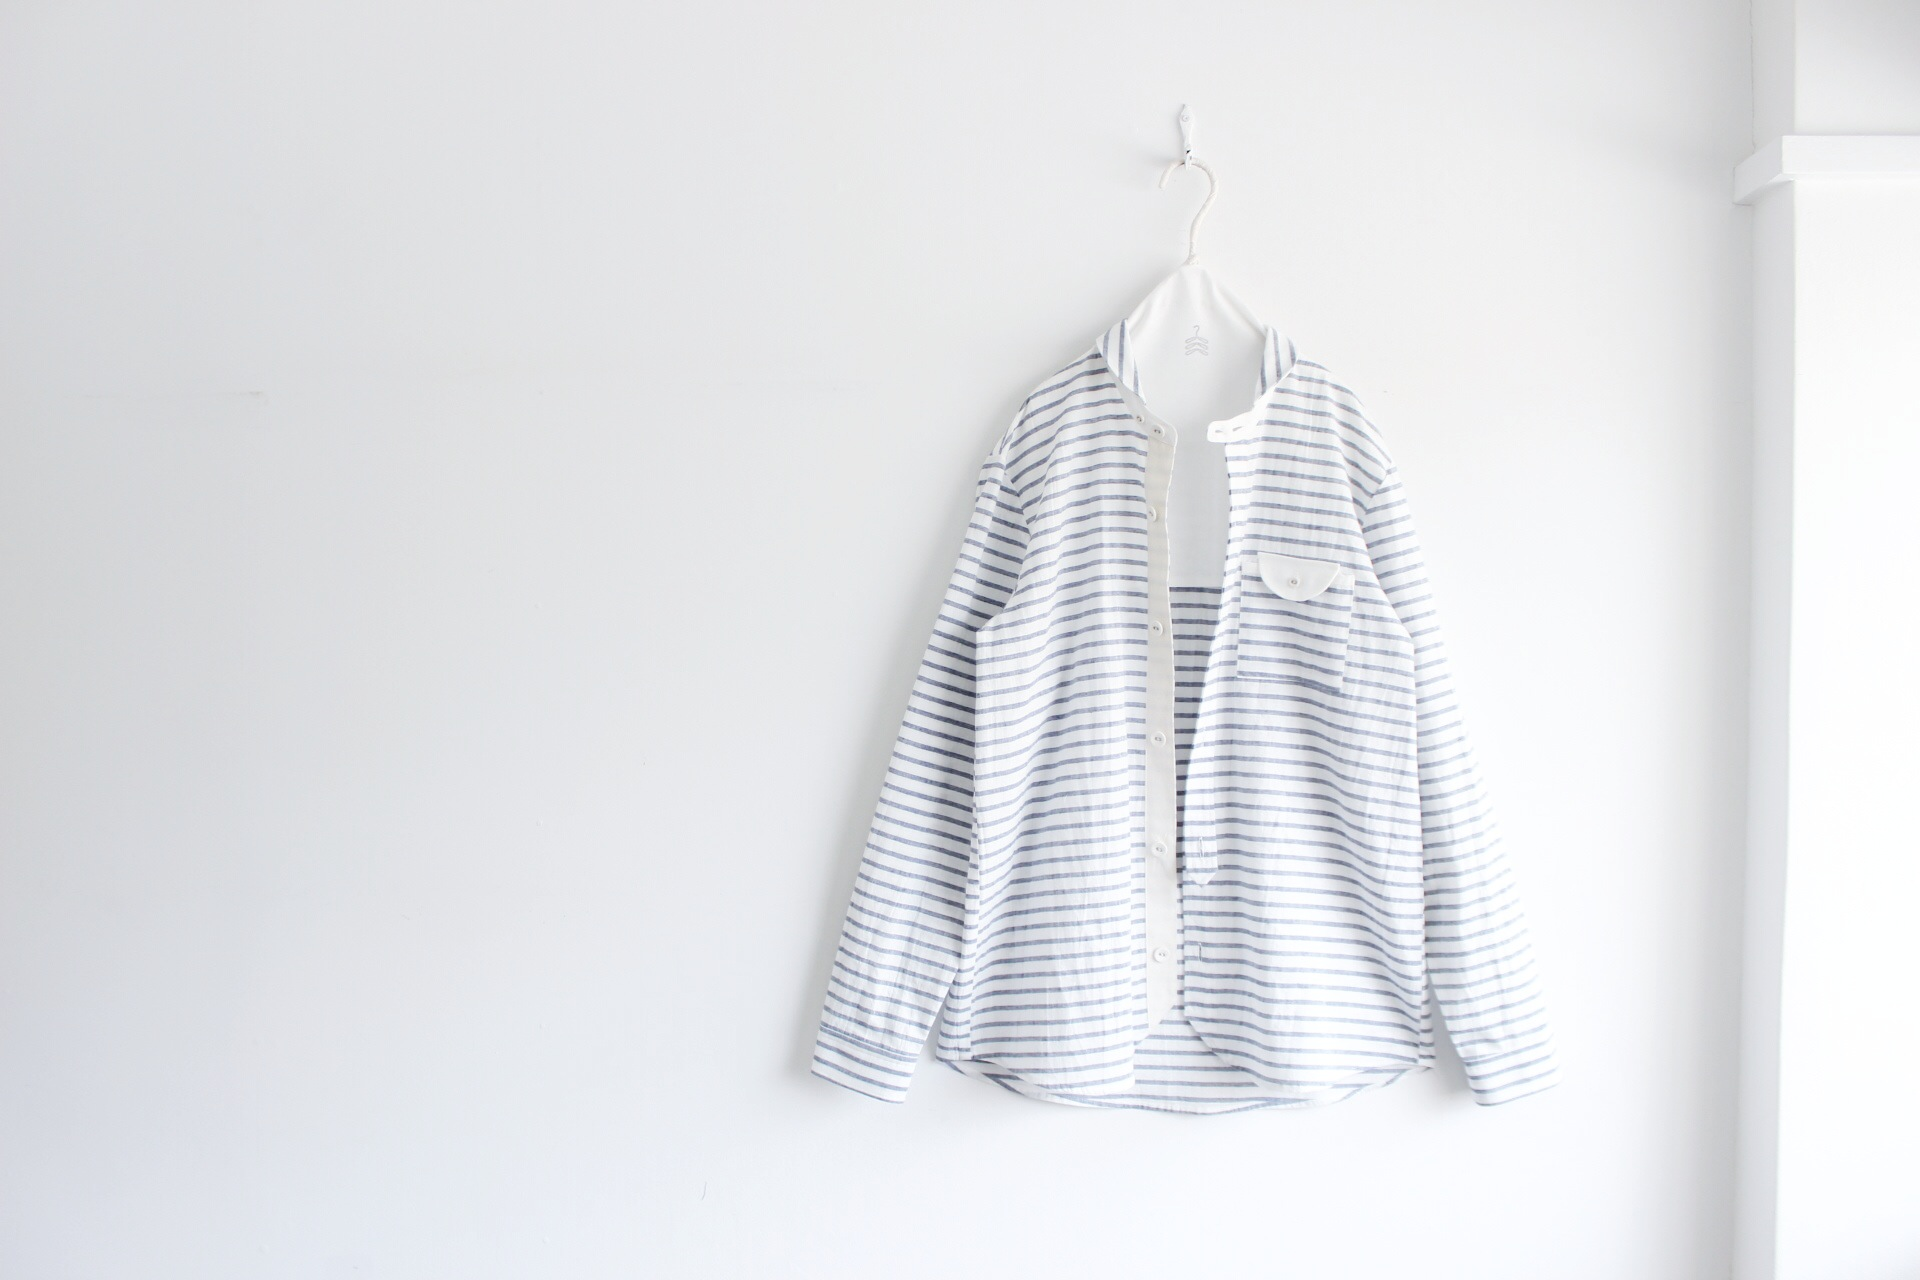 securedownload (28)